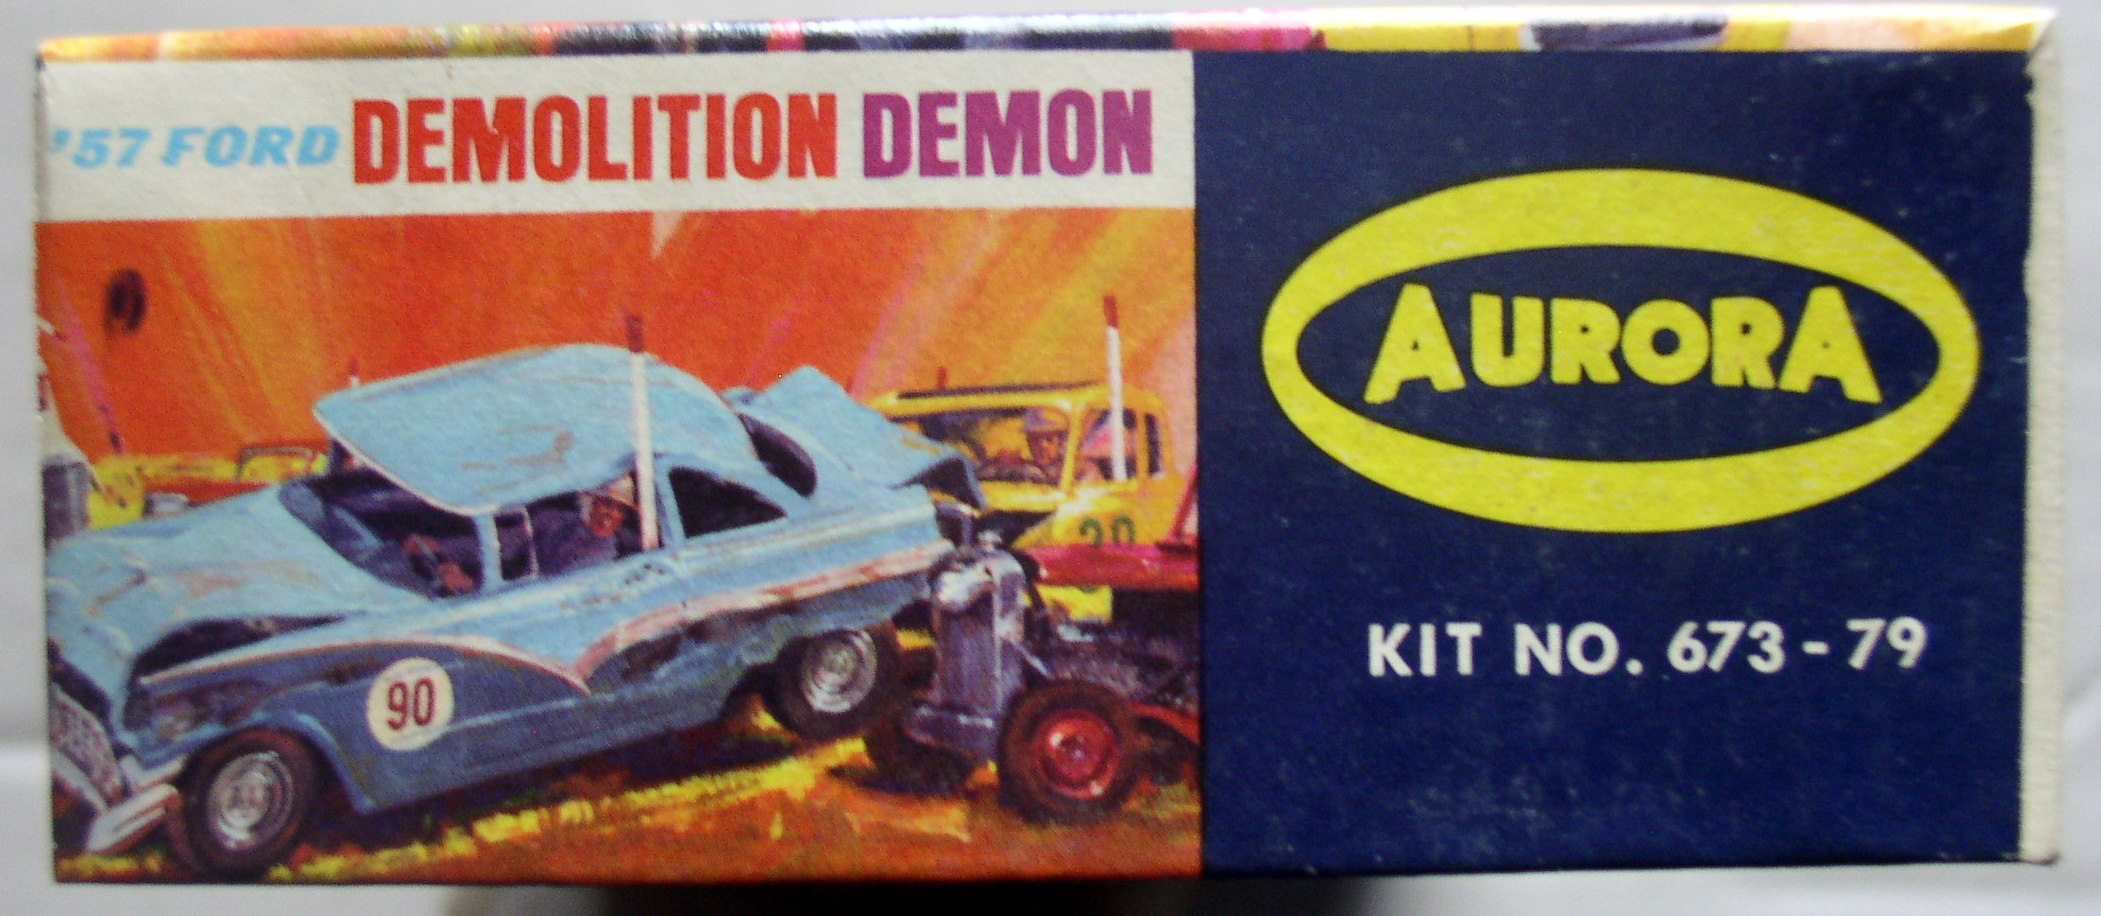 57 Ford Demolition Demon Thingery Previews Postviews